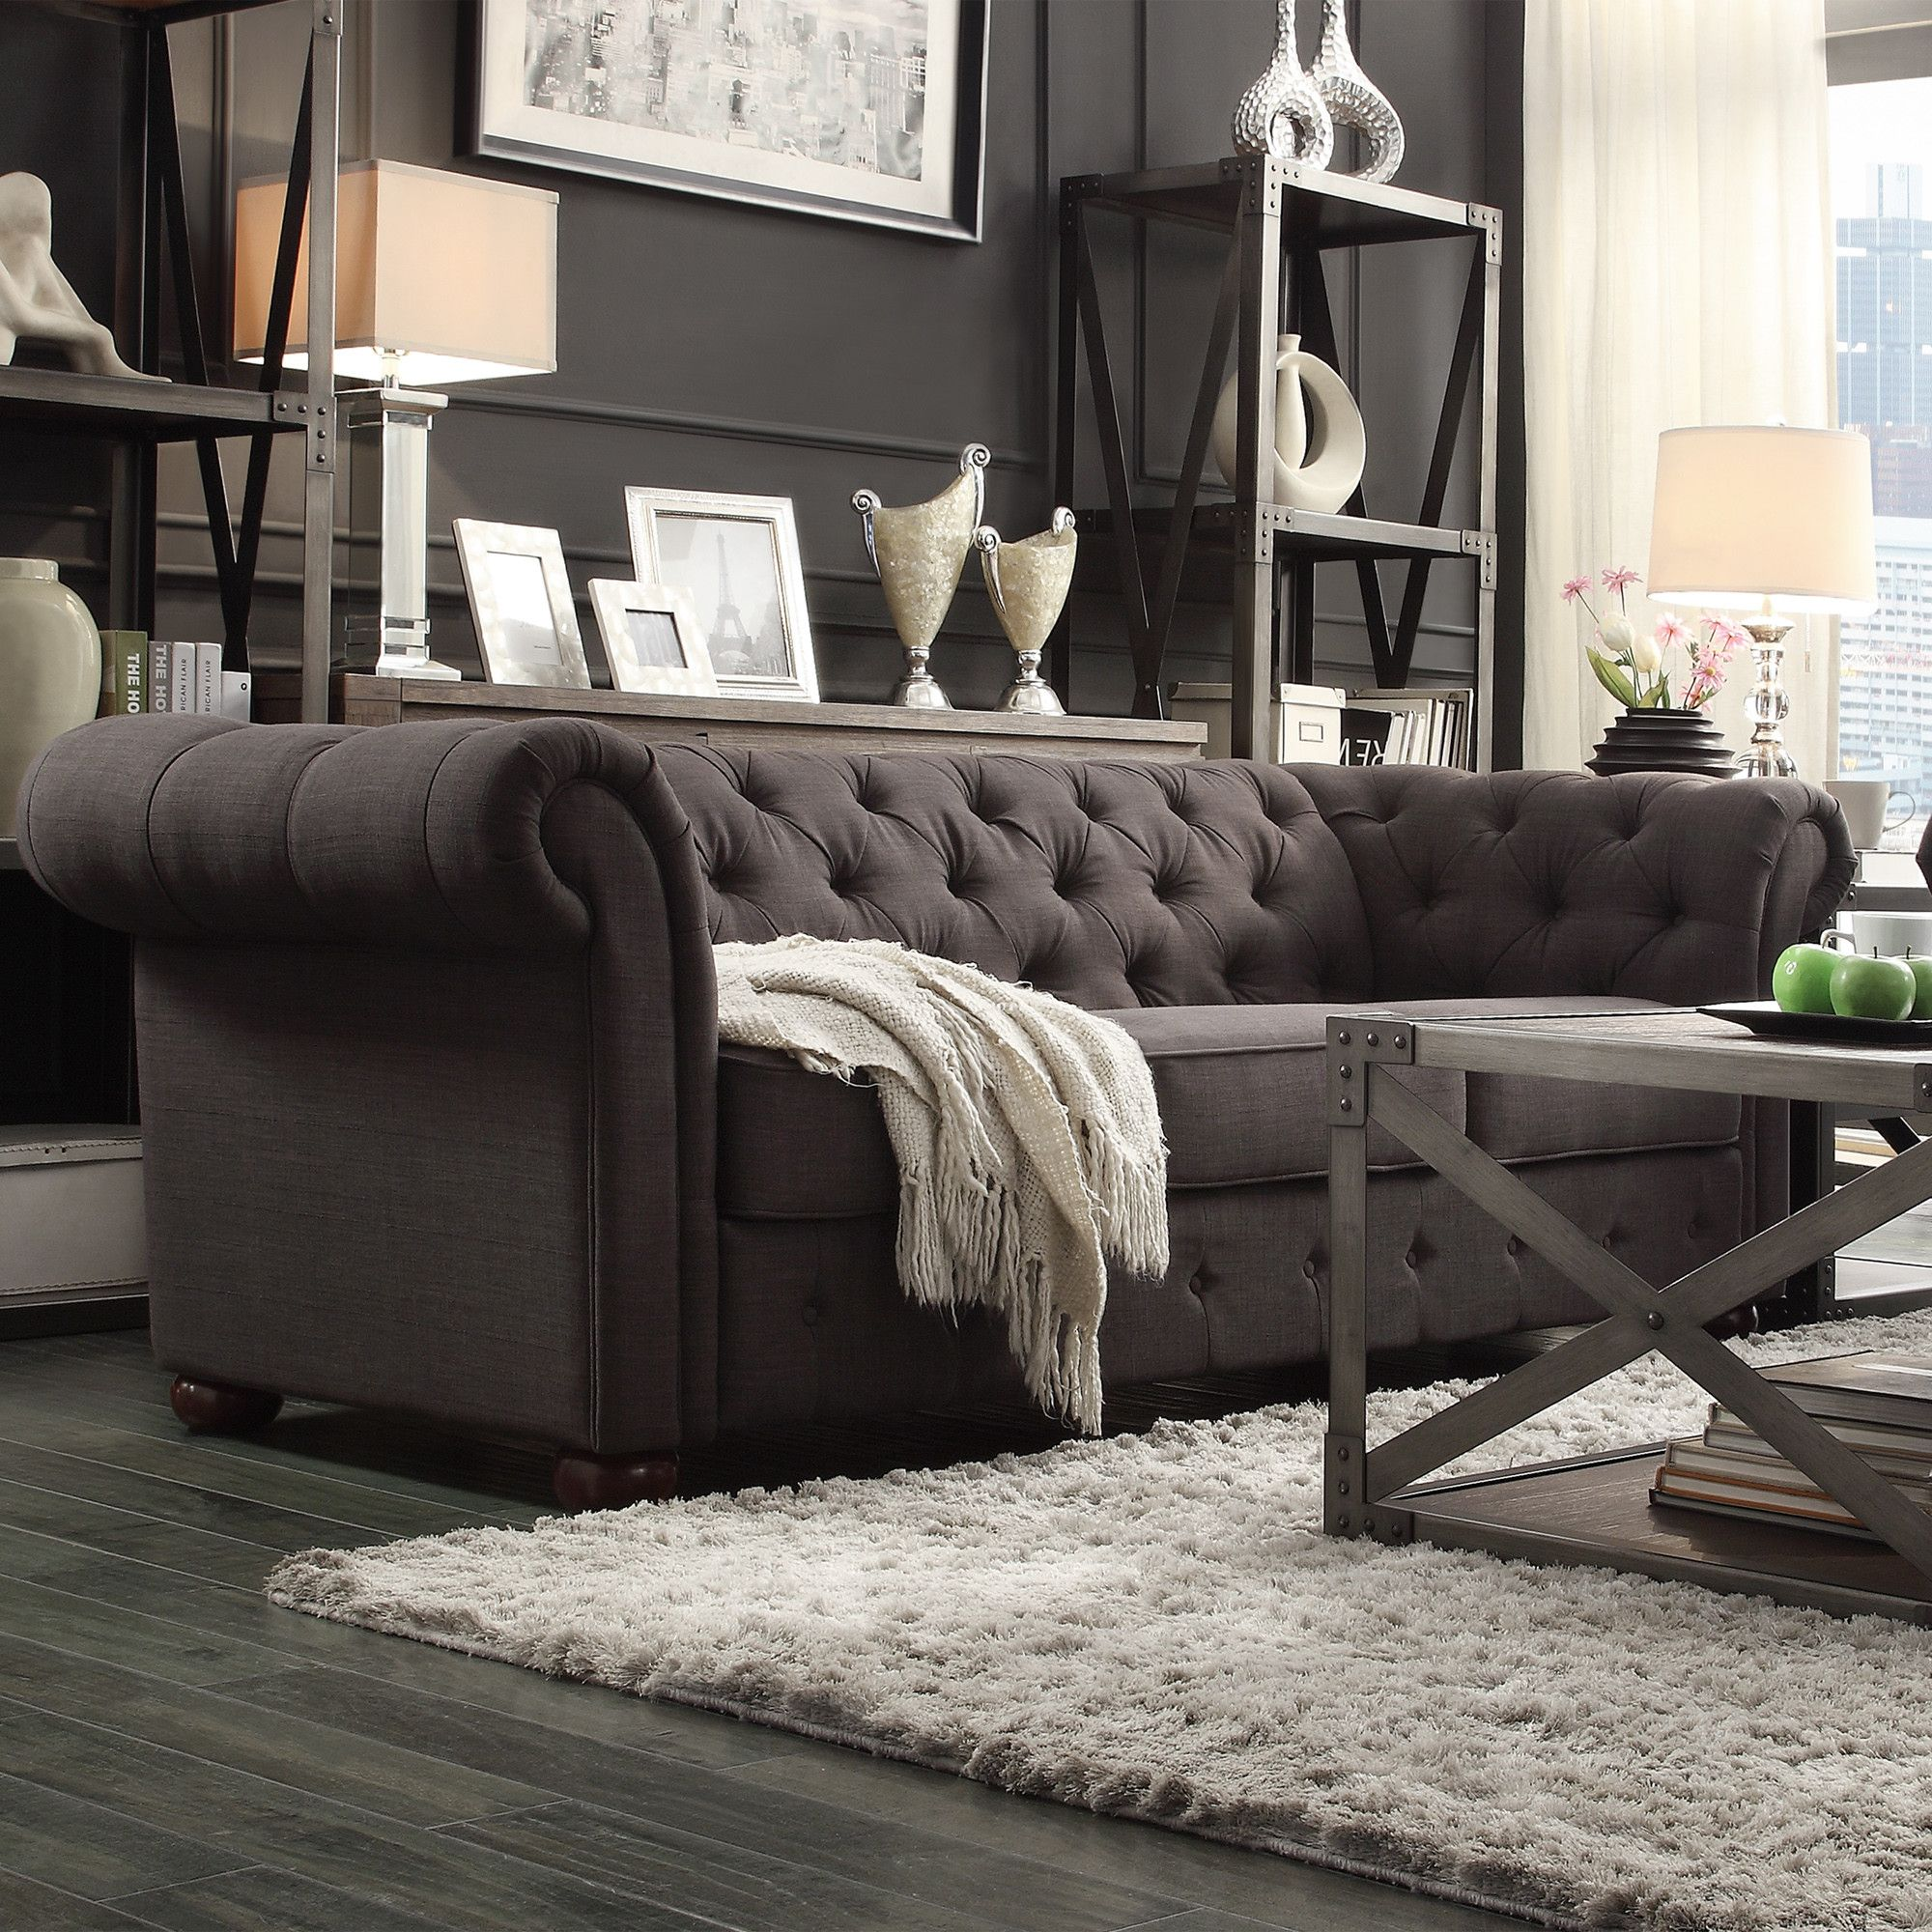 Tufted Button Sofa Sectional Leather Black Kingstown Home Carthusia Allmodern A